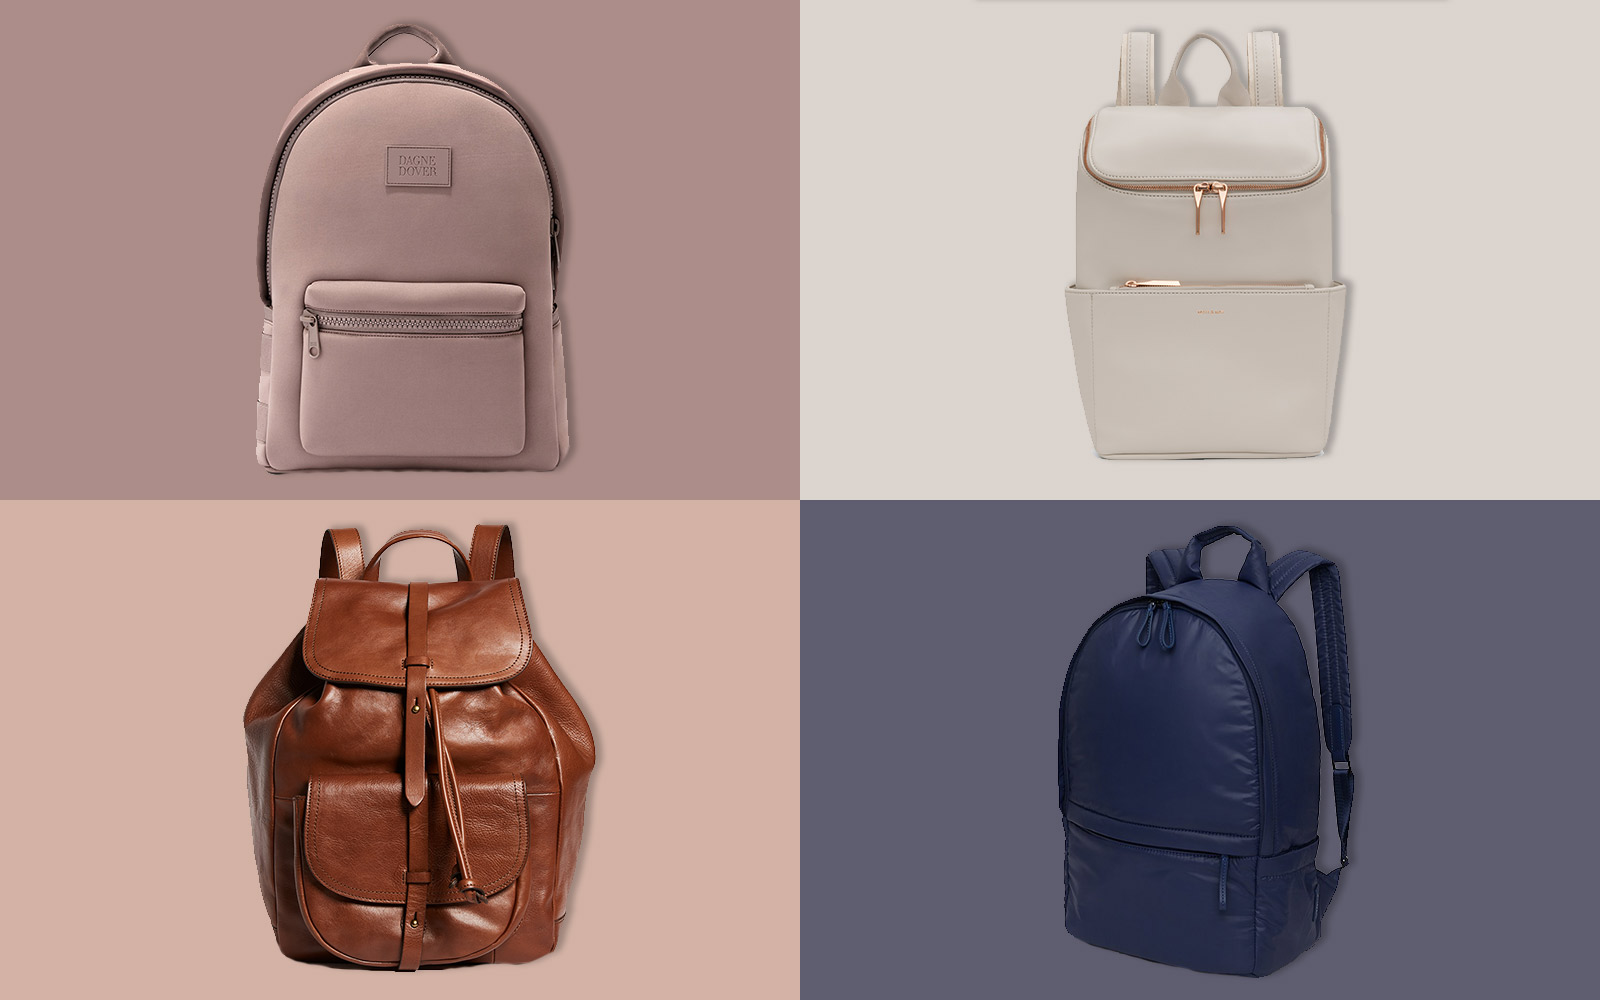 92a68516b The Most Stylish Travel Backpacks For Women | Travel + Leisure